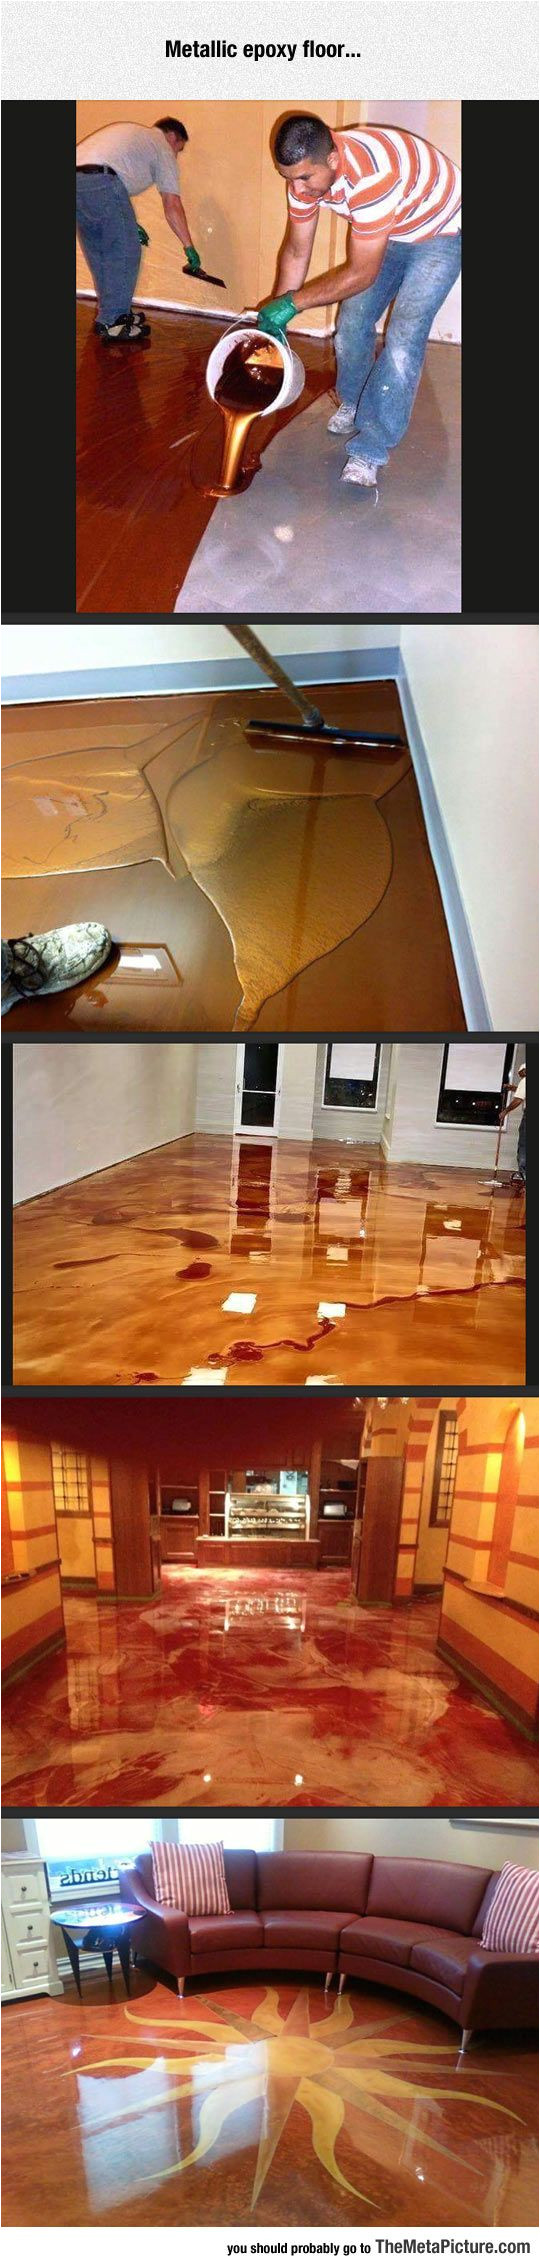 epoxy floor epoxy floor diy epoxy floor basement diy epoxy garage flooring